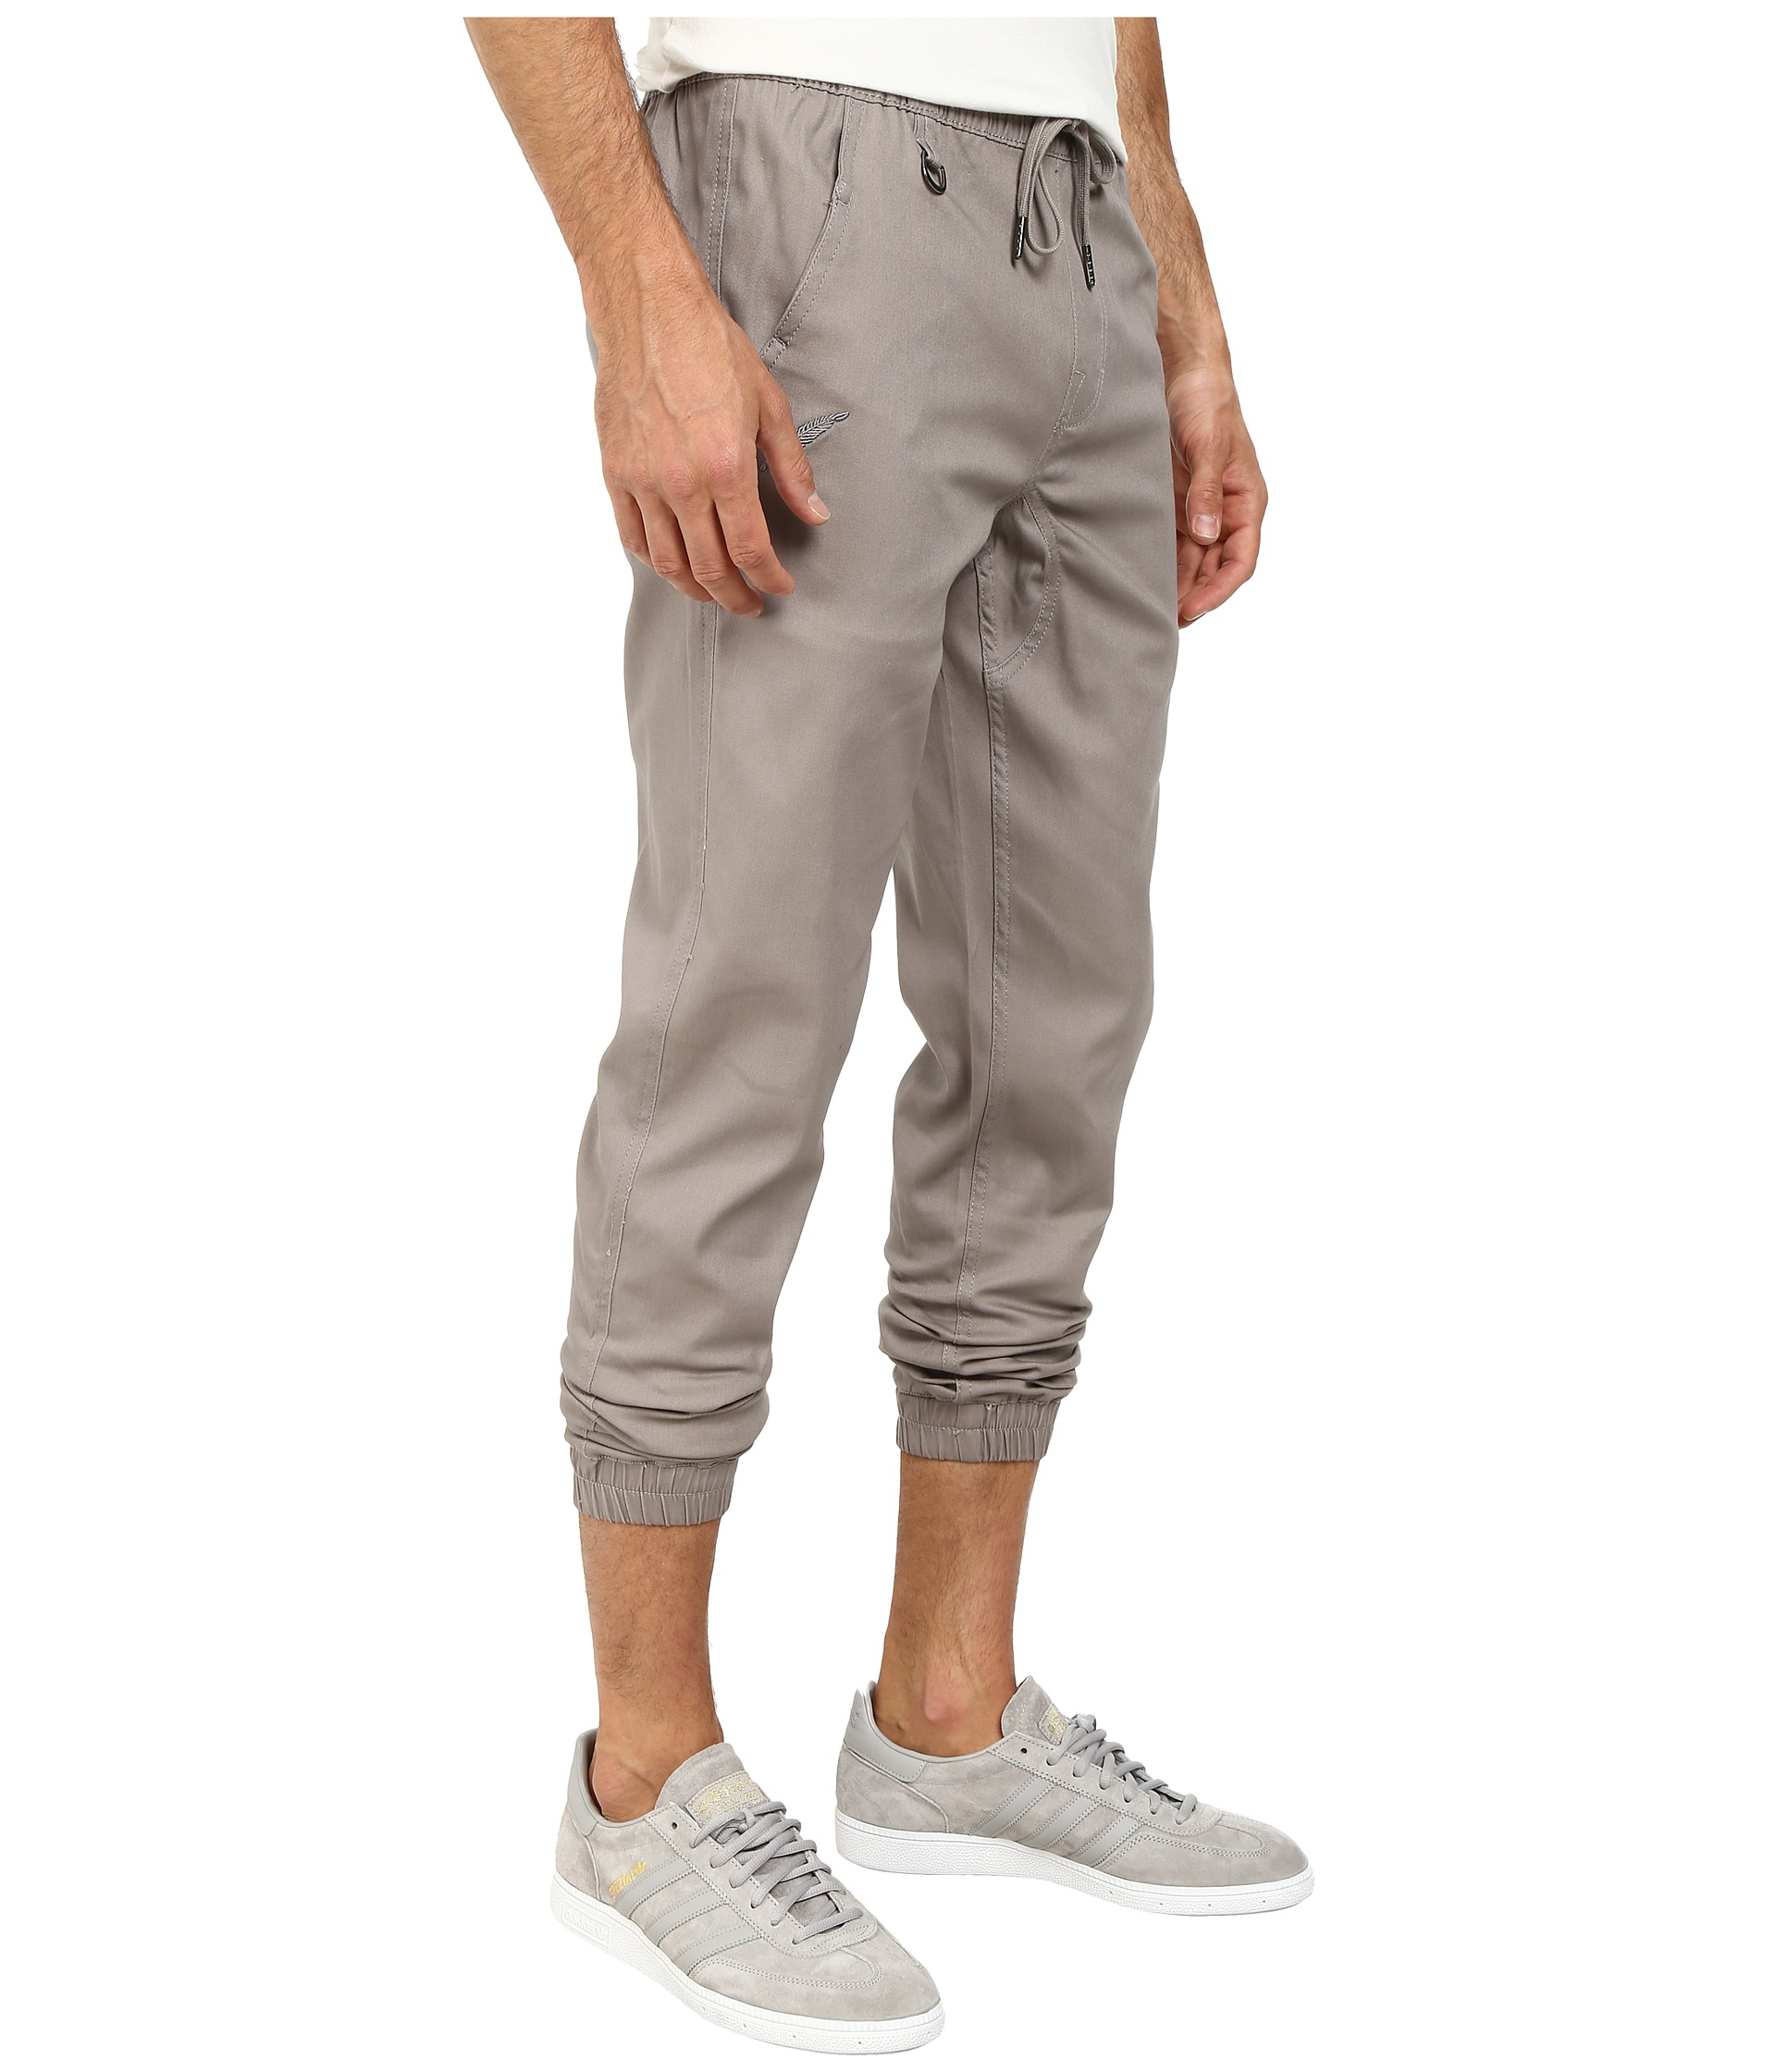 Unique Macron  Hoopika Women39s Melange Grey Jogging Pants  MosaeSportscom